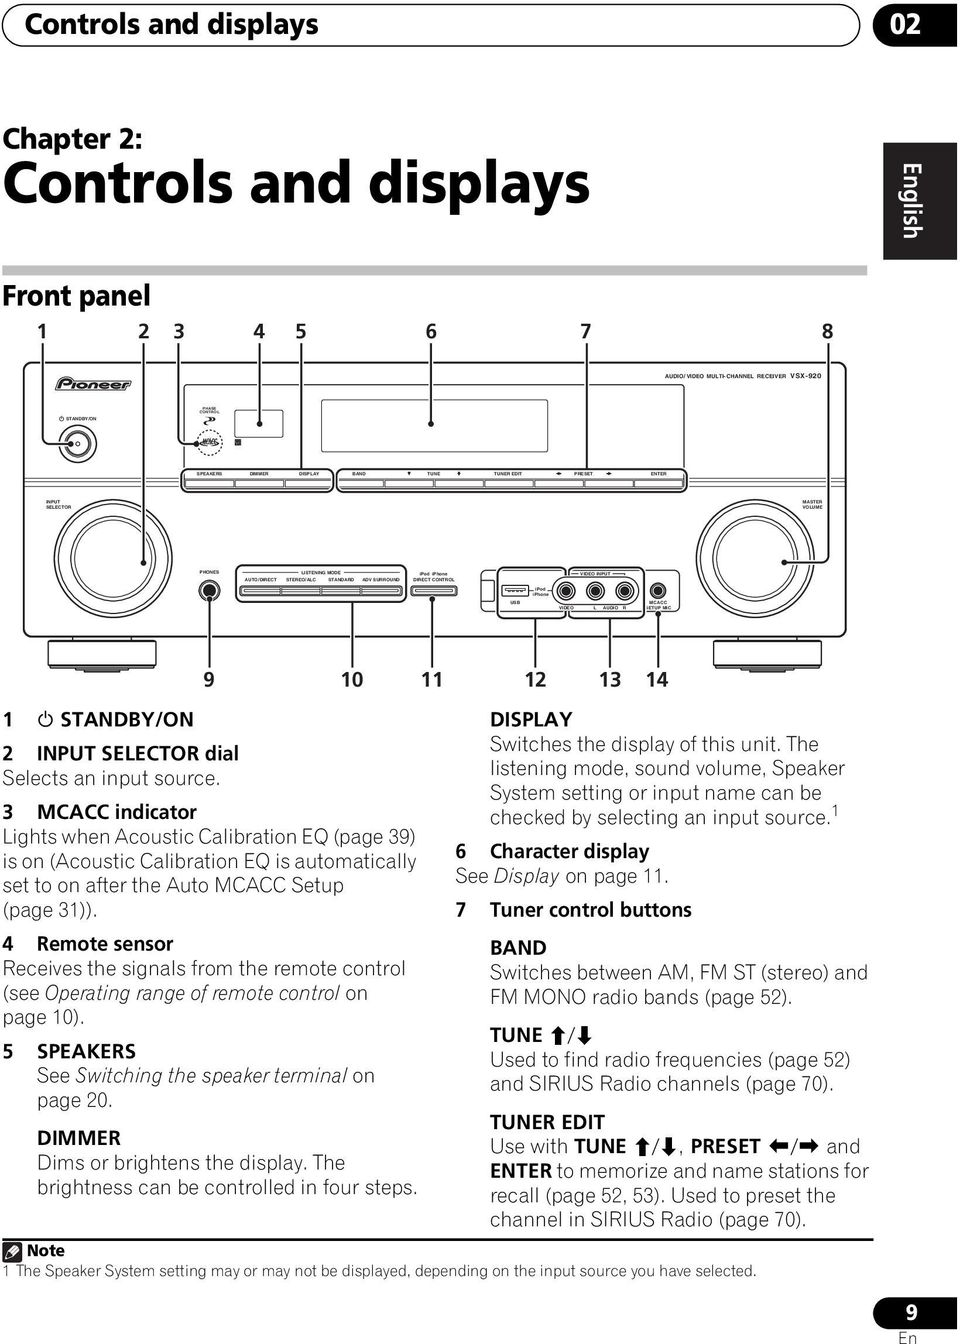 (page 31)). 4 emote sensor eceives the signals from the remote control (see Operating range of remote control on page 10). 5 SPEAKES See Switching the speaker terminal on page 20.